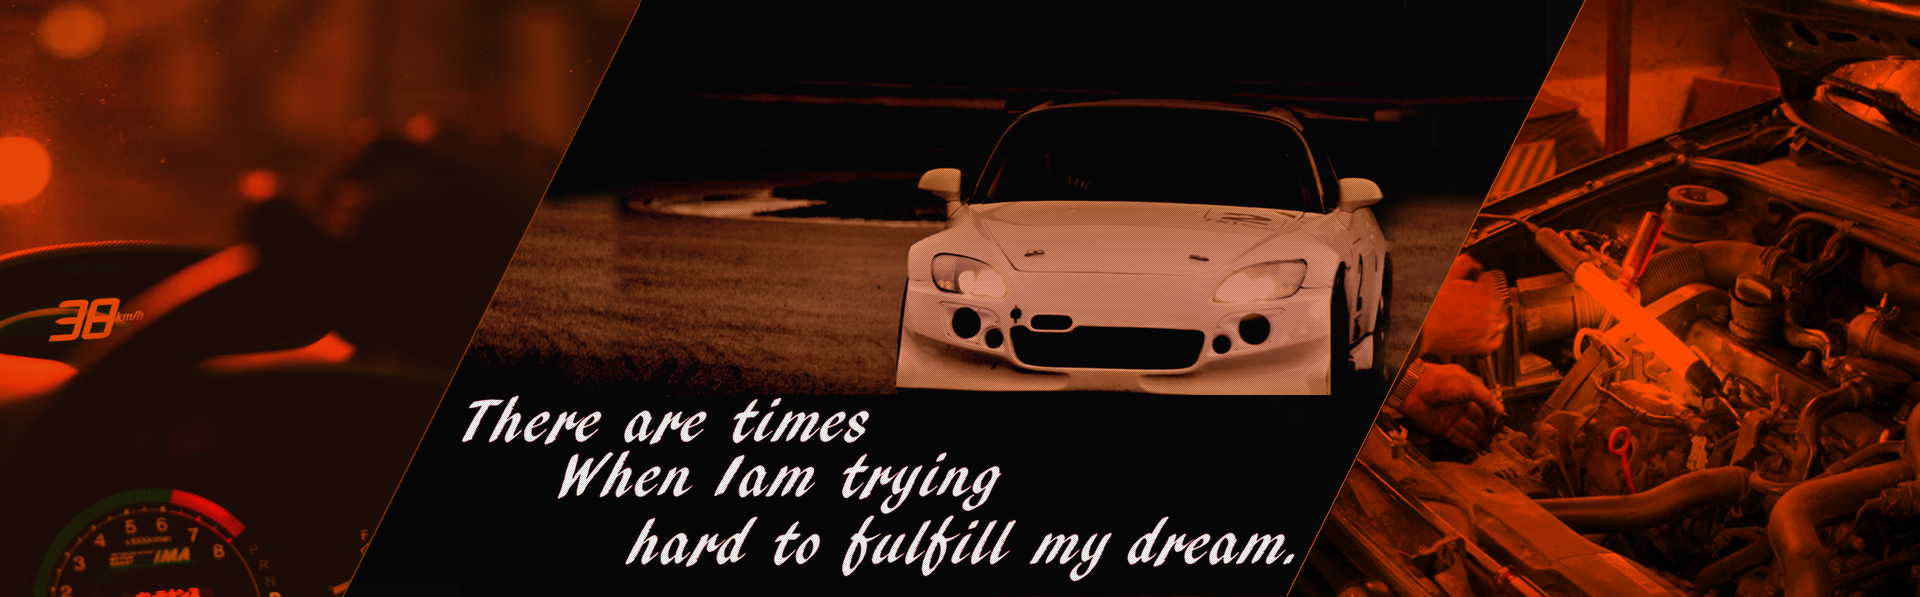 There are times When Iam trying hard to fulfill my dream